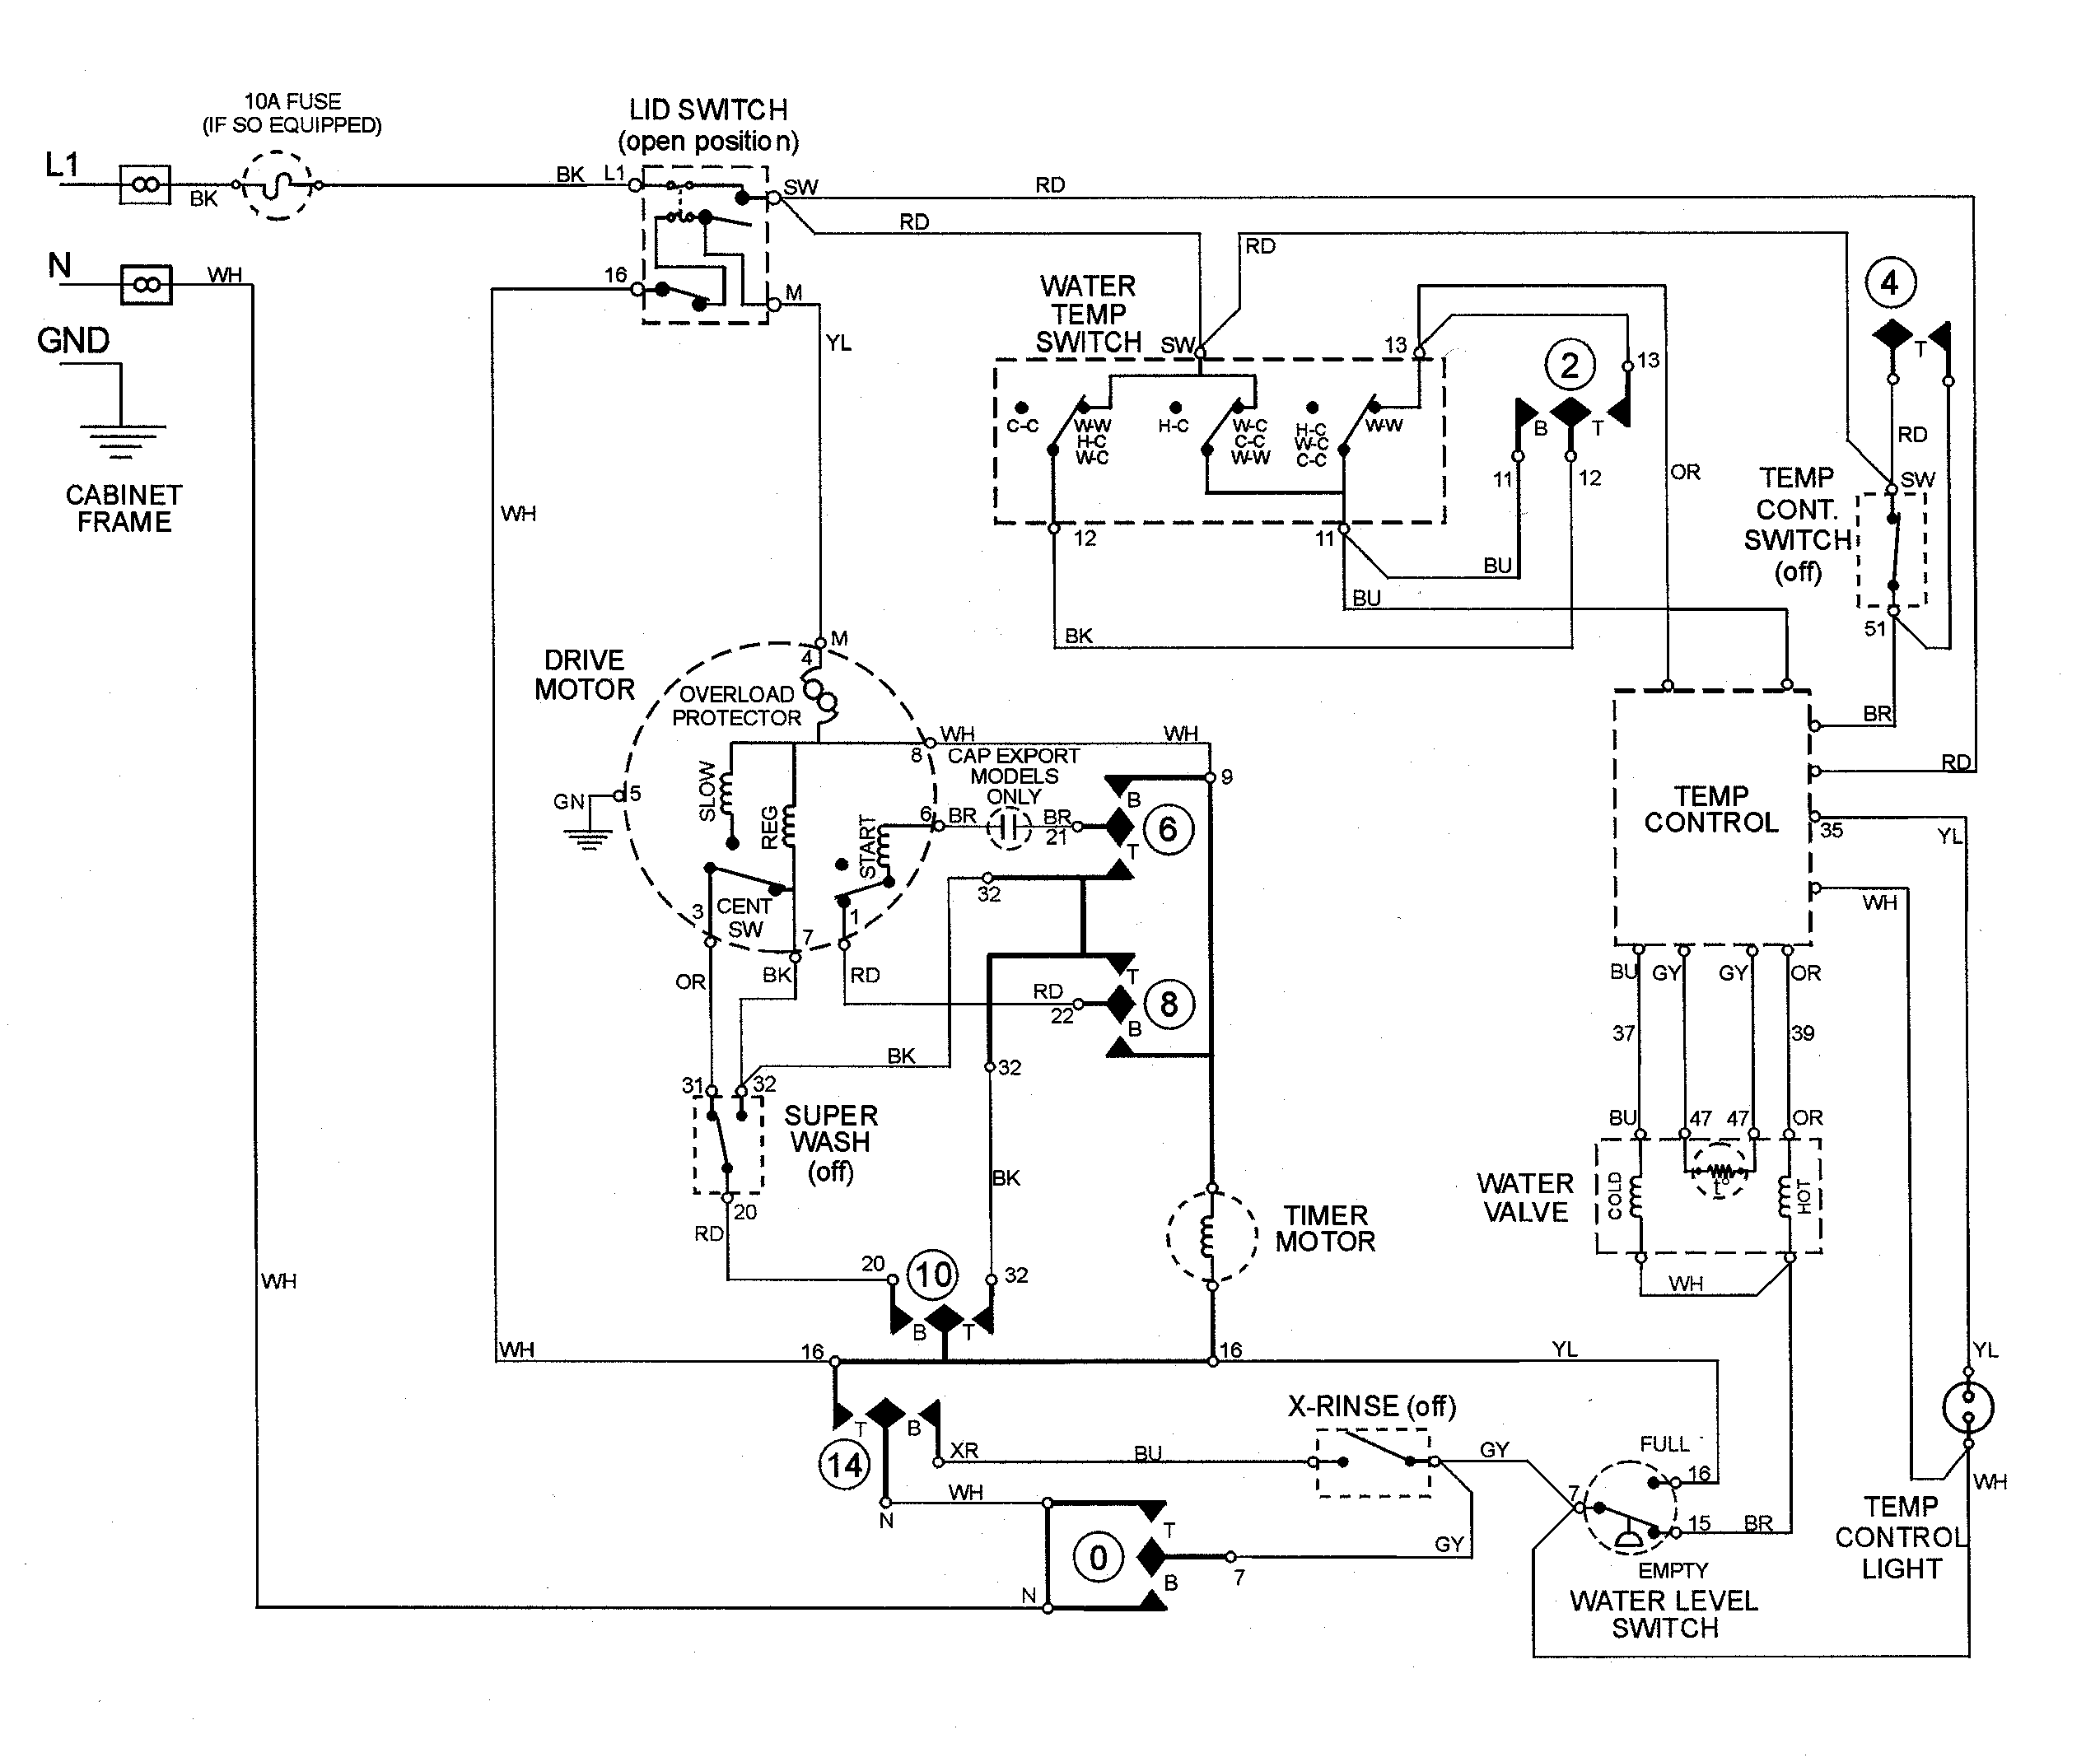 Ge Washing Machine Motor Wiring Diagram, Ge, Wiring Diagram And Washing  Machine Motor,